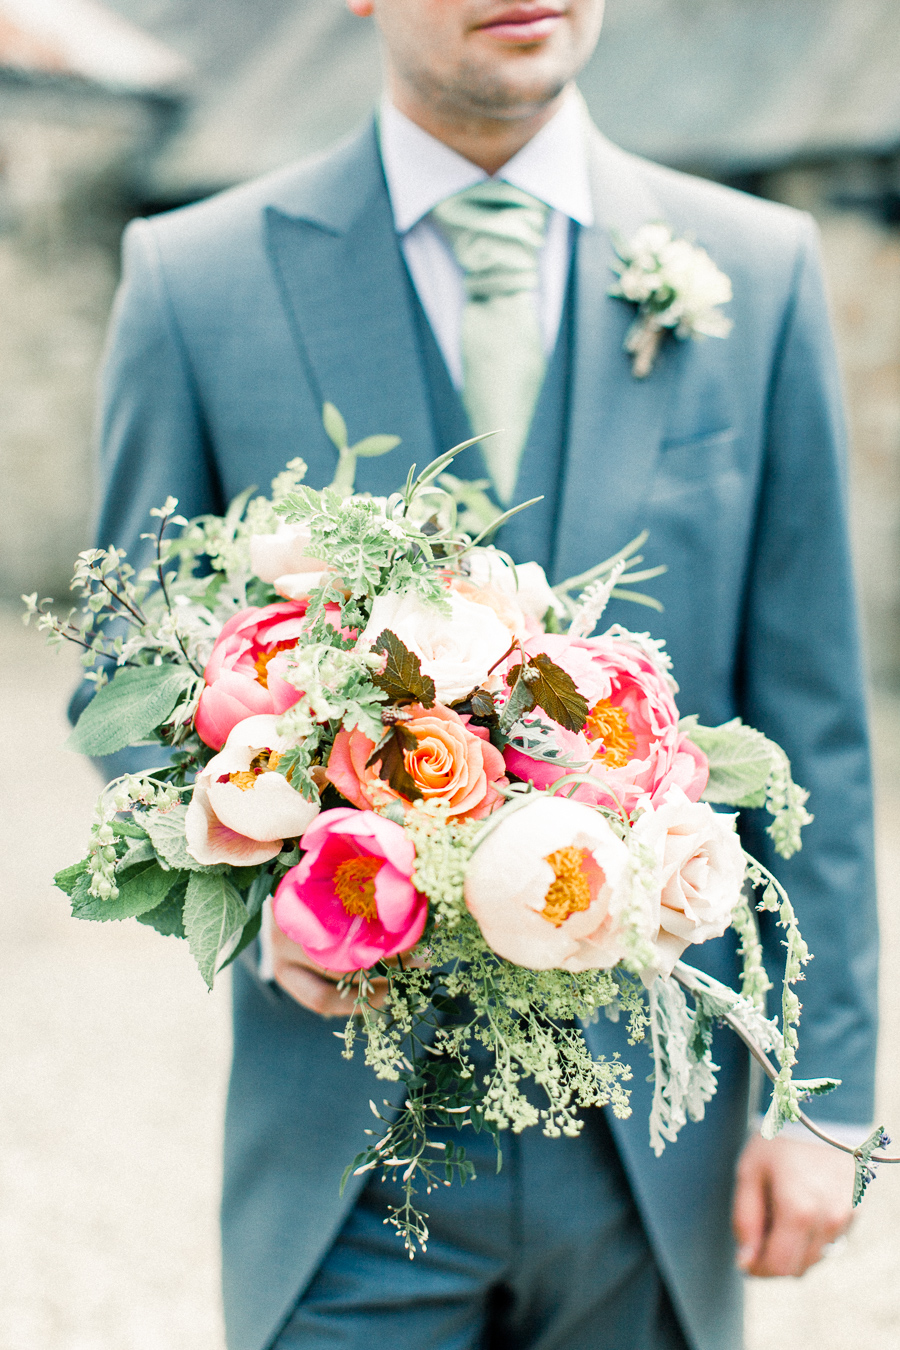 Jordans Courtyard rustic wedding styling ideas with images by Liz Baker Photography (39)